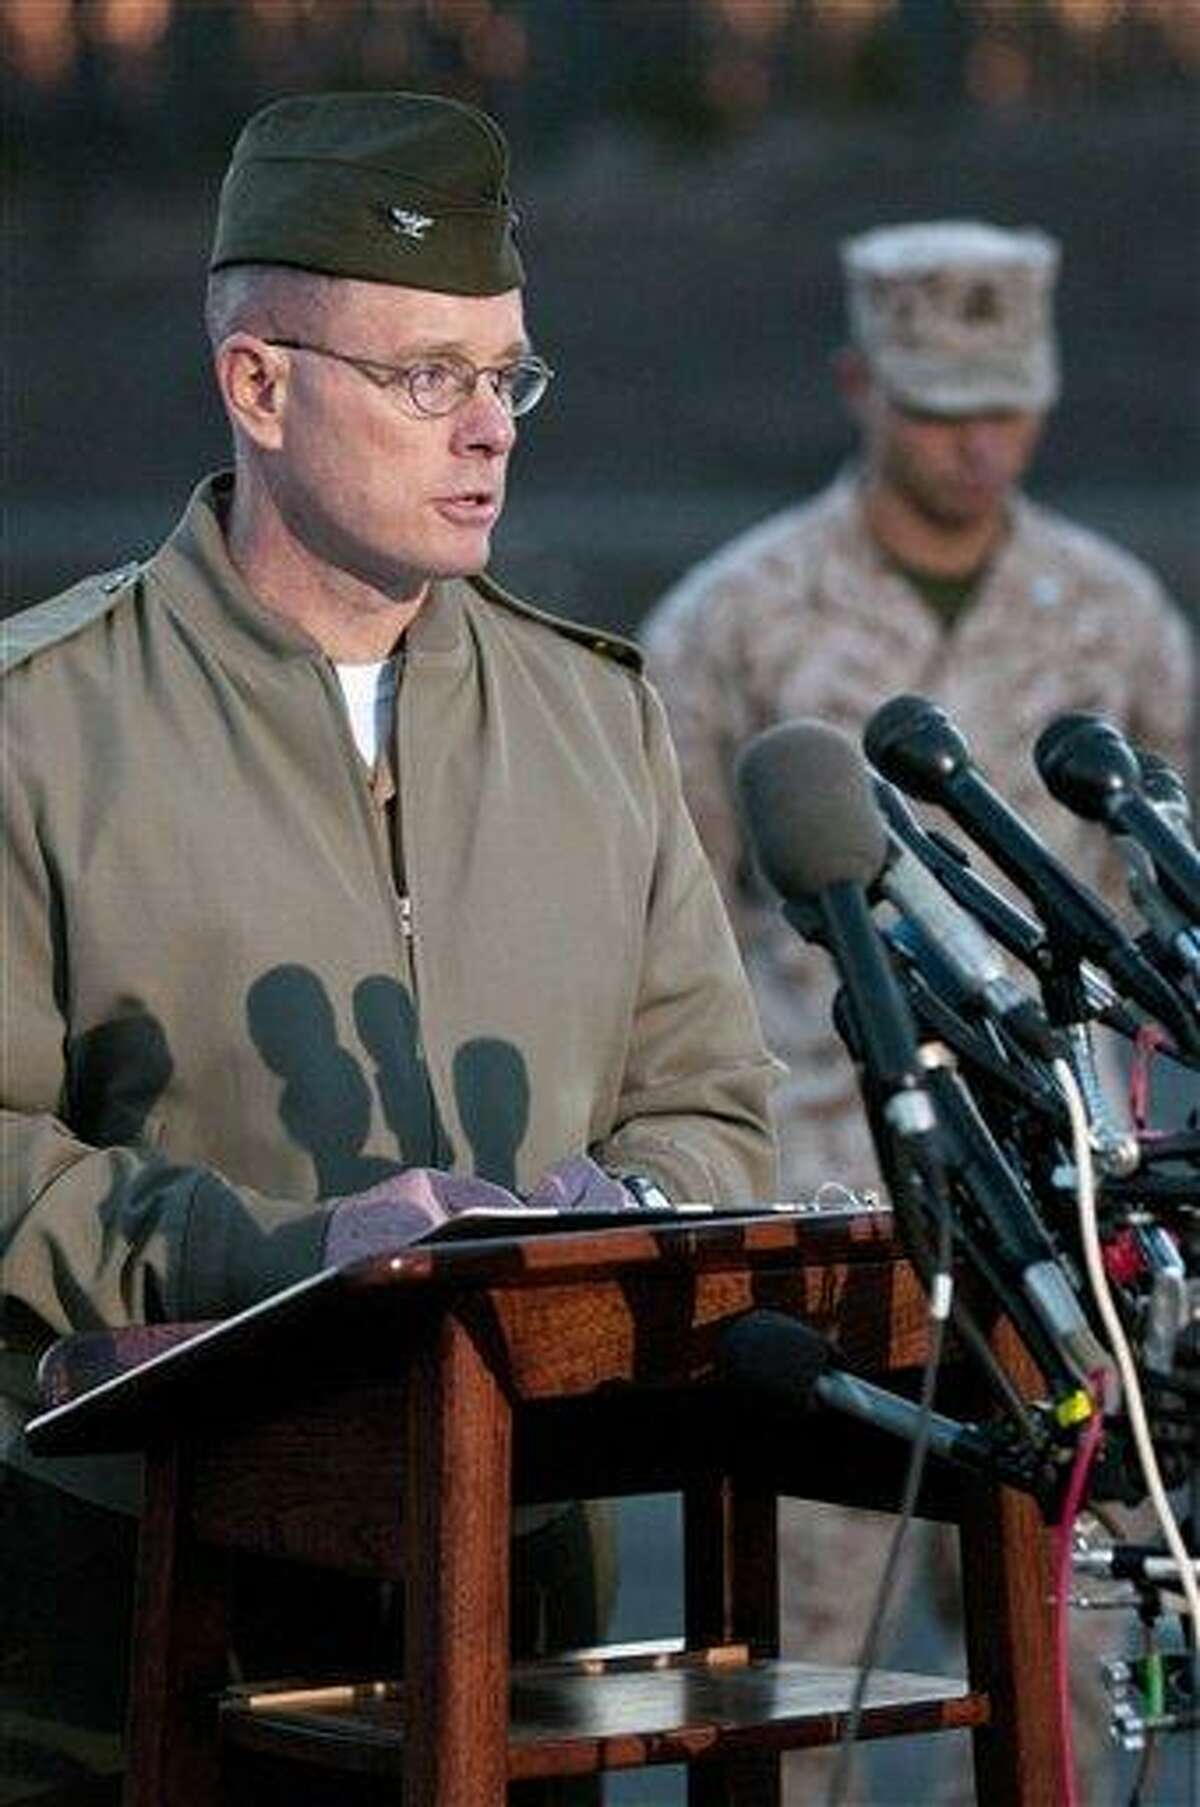 Col. David W. Maxwell, commander of Marine Corps Base Quantico, holds a news conference at the National Museum of the Marine Corps in Triangle, Va. on Friday, March 22, 2013. A Marine killed a male and female colleague in a shooting before killing himself, officials said early Friday. Authorities were called to the scene at Marine Corps Base Quantico around 10:30 p.m. Thursday, where they found one Marine dead at a barracks, base according to Maxwell. Authorities later found a second victim dead, along with the body of the suspected gunman, who died of self-inflicted gunshot wound. (AP Photo/Marine Corps Times, Mike Morones)